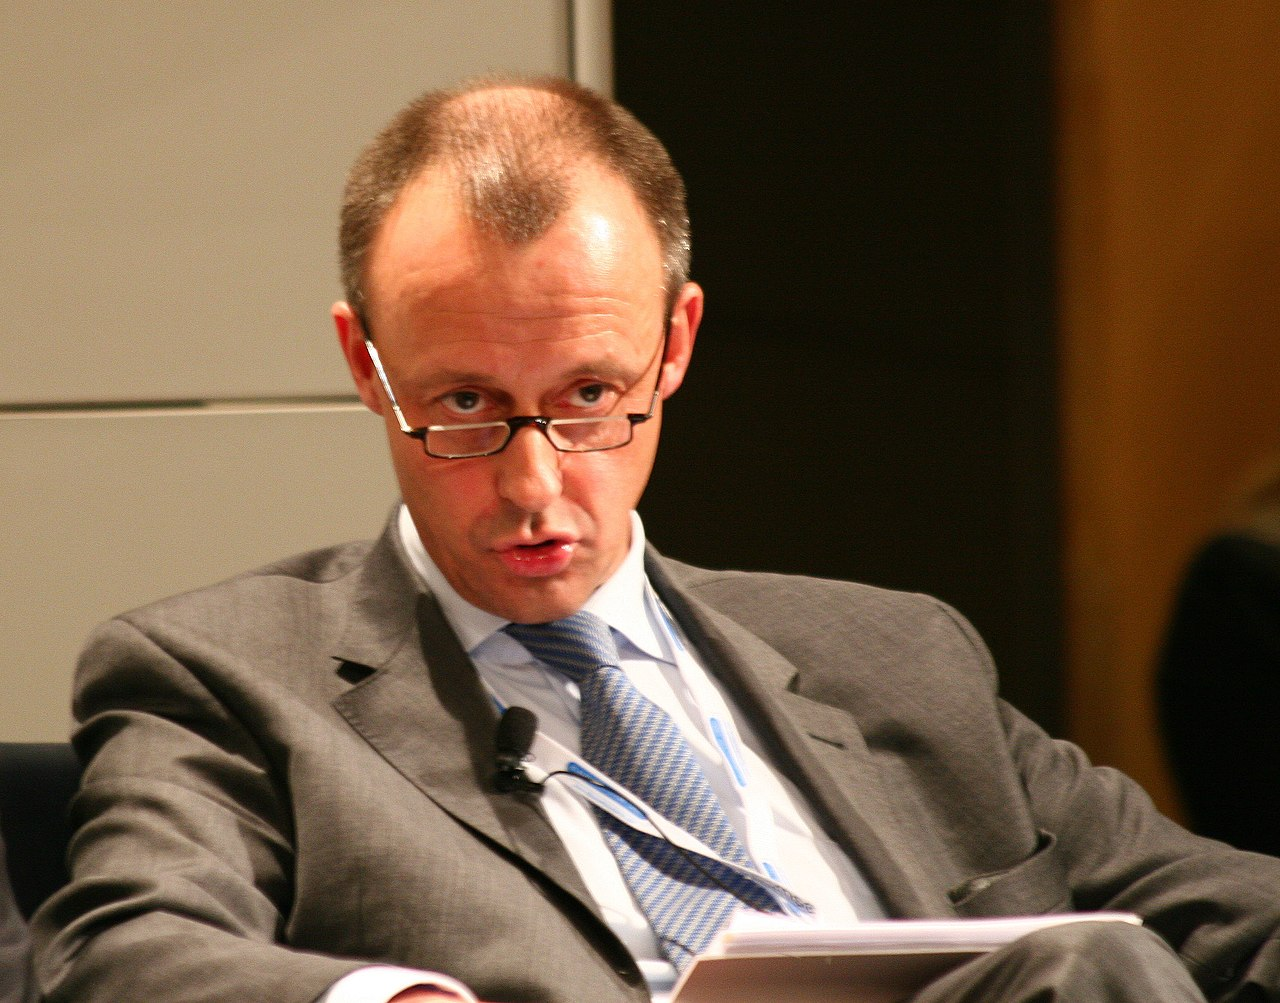 Munich Security Conference 2010 - dett merz 0002.jpg